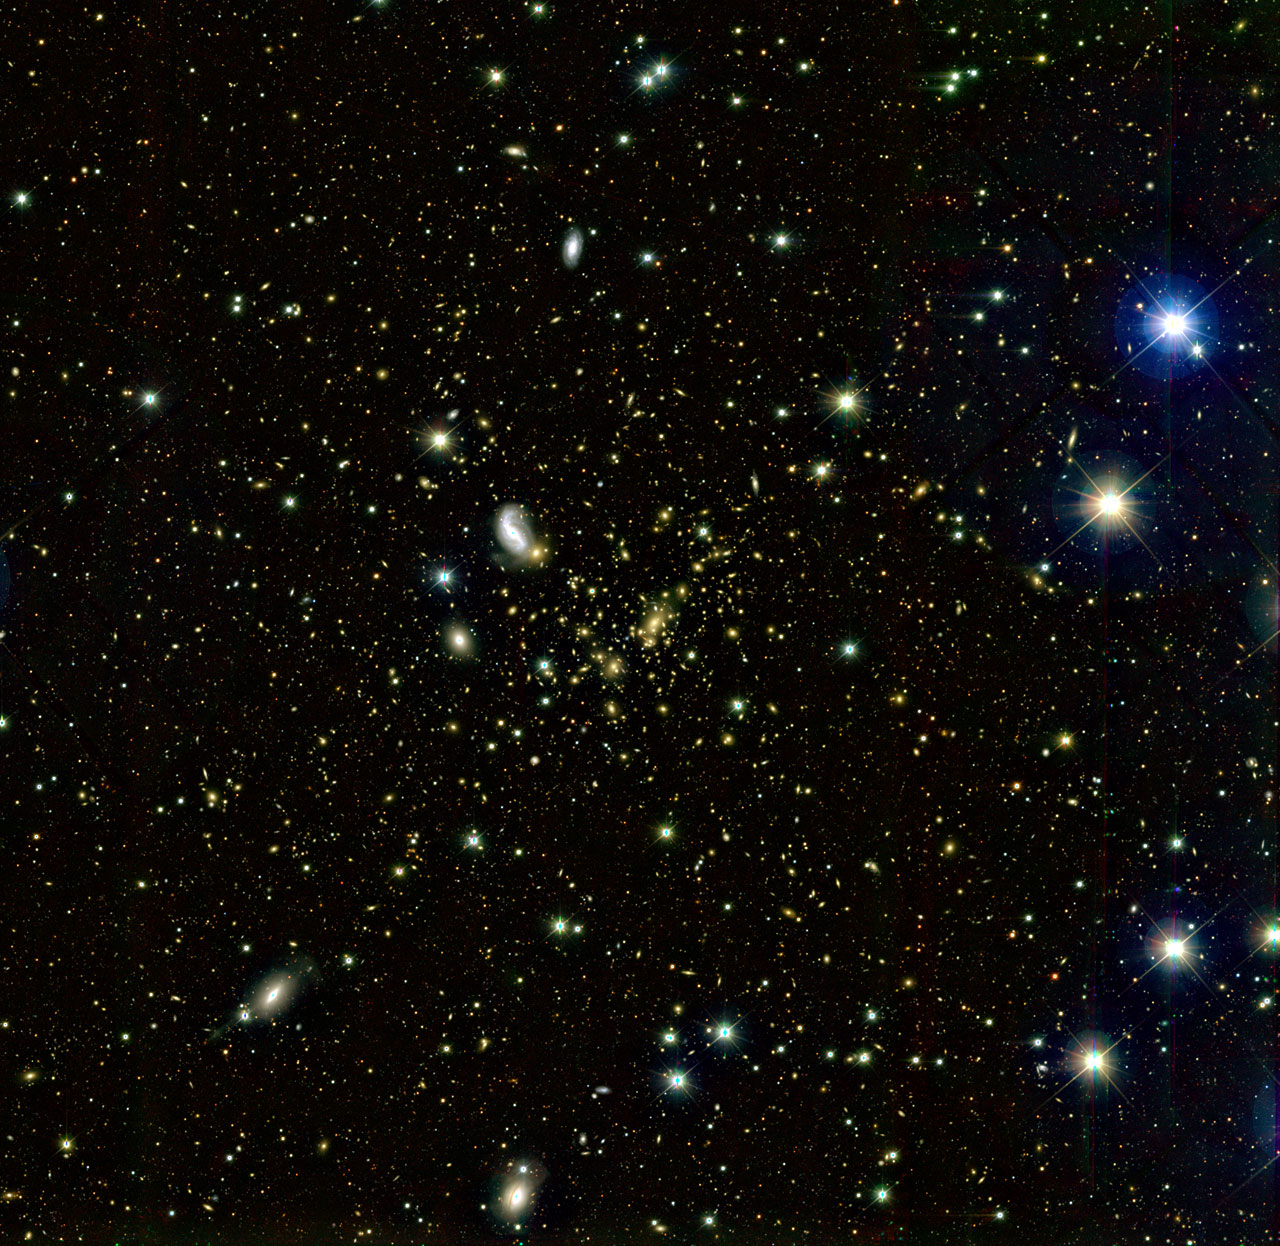 galaxies in the universe poster - photo #38